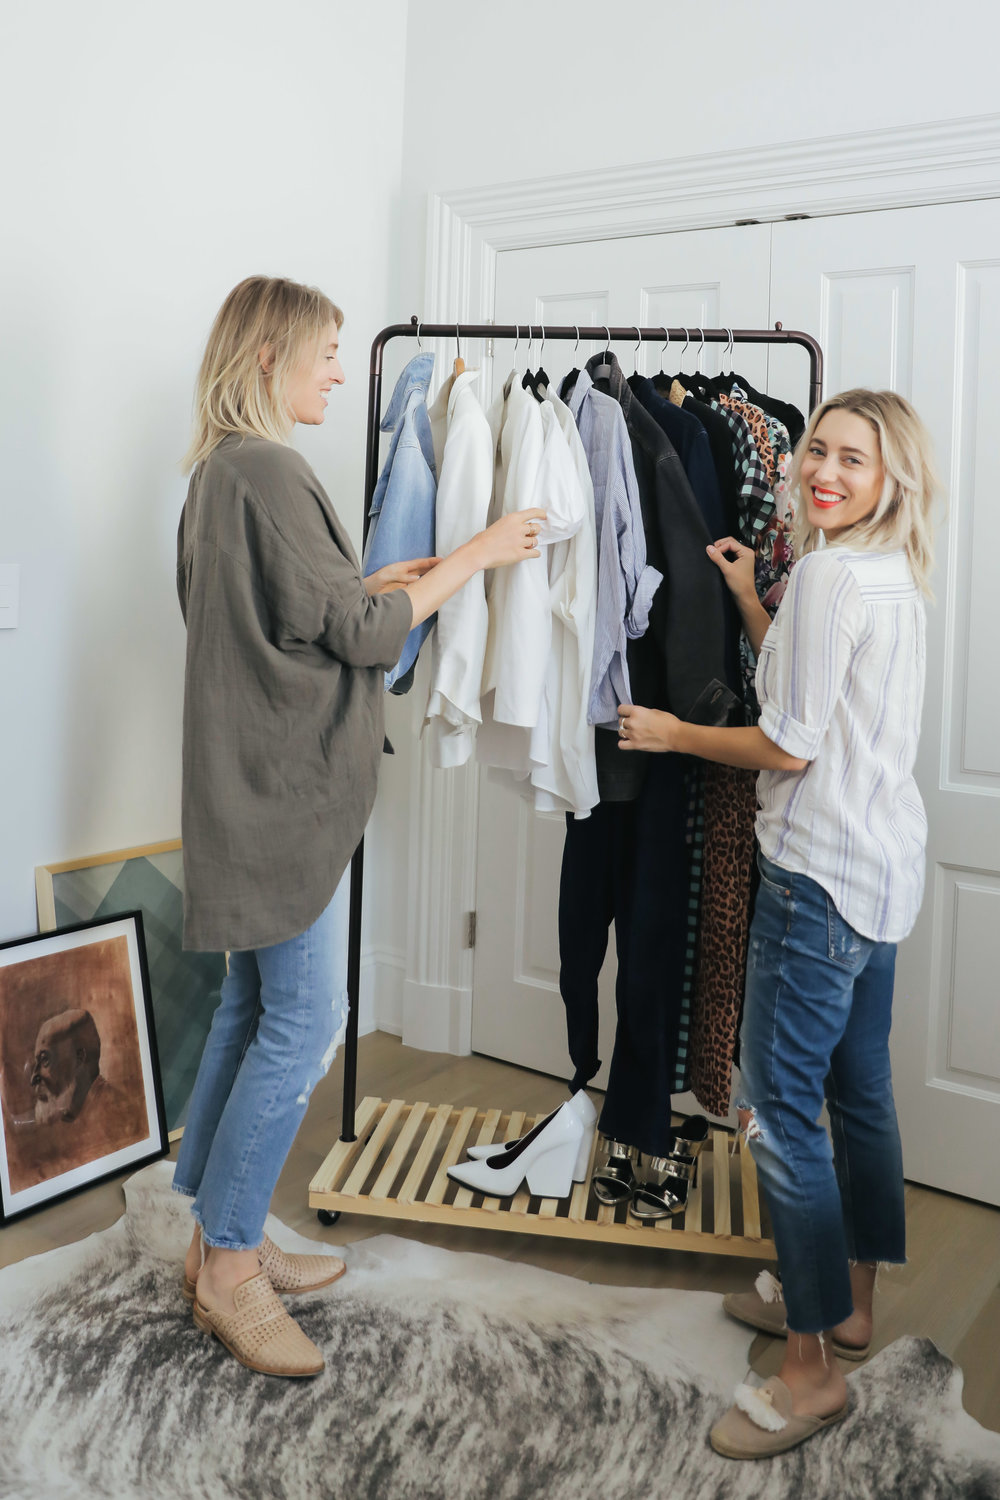 Initial Consult - This is probably the most crucial part of the whole process, but it's not scary, I promise! The initial consult is the first step towards creating your dream closet - one that is cohesive and works for you, not against you.We start by sitting down and chatting about your style goals, what's working for you and what isn't, and begin creating a customized plan specific to your needs and budget.